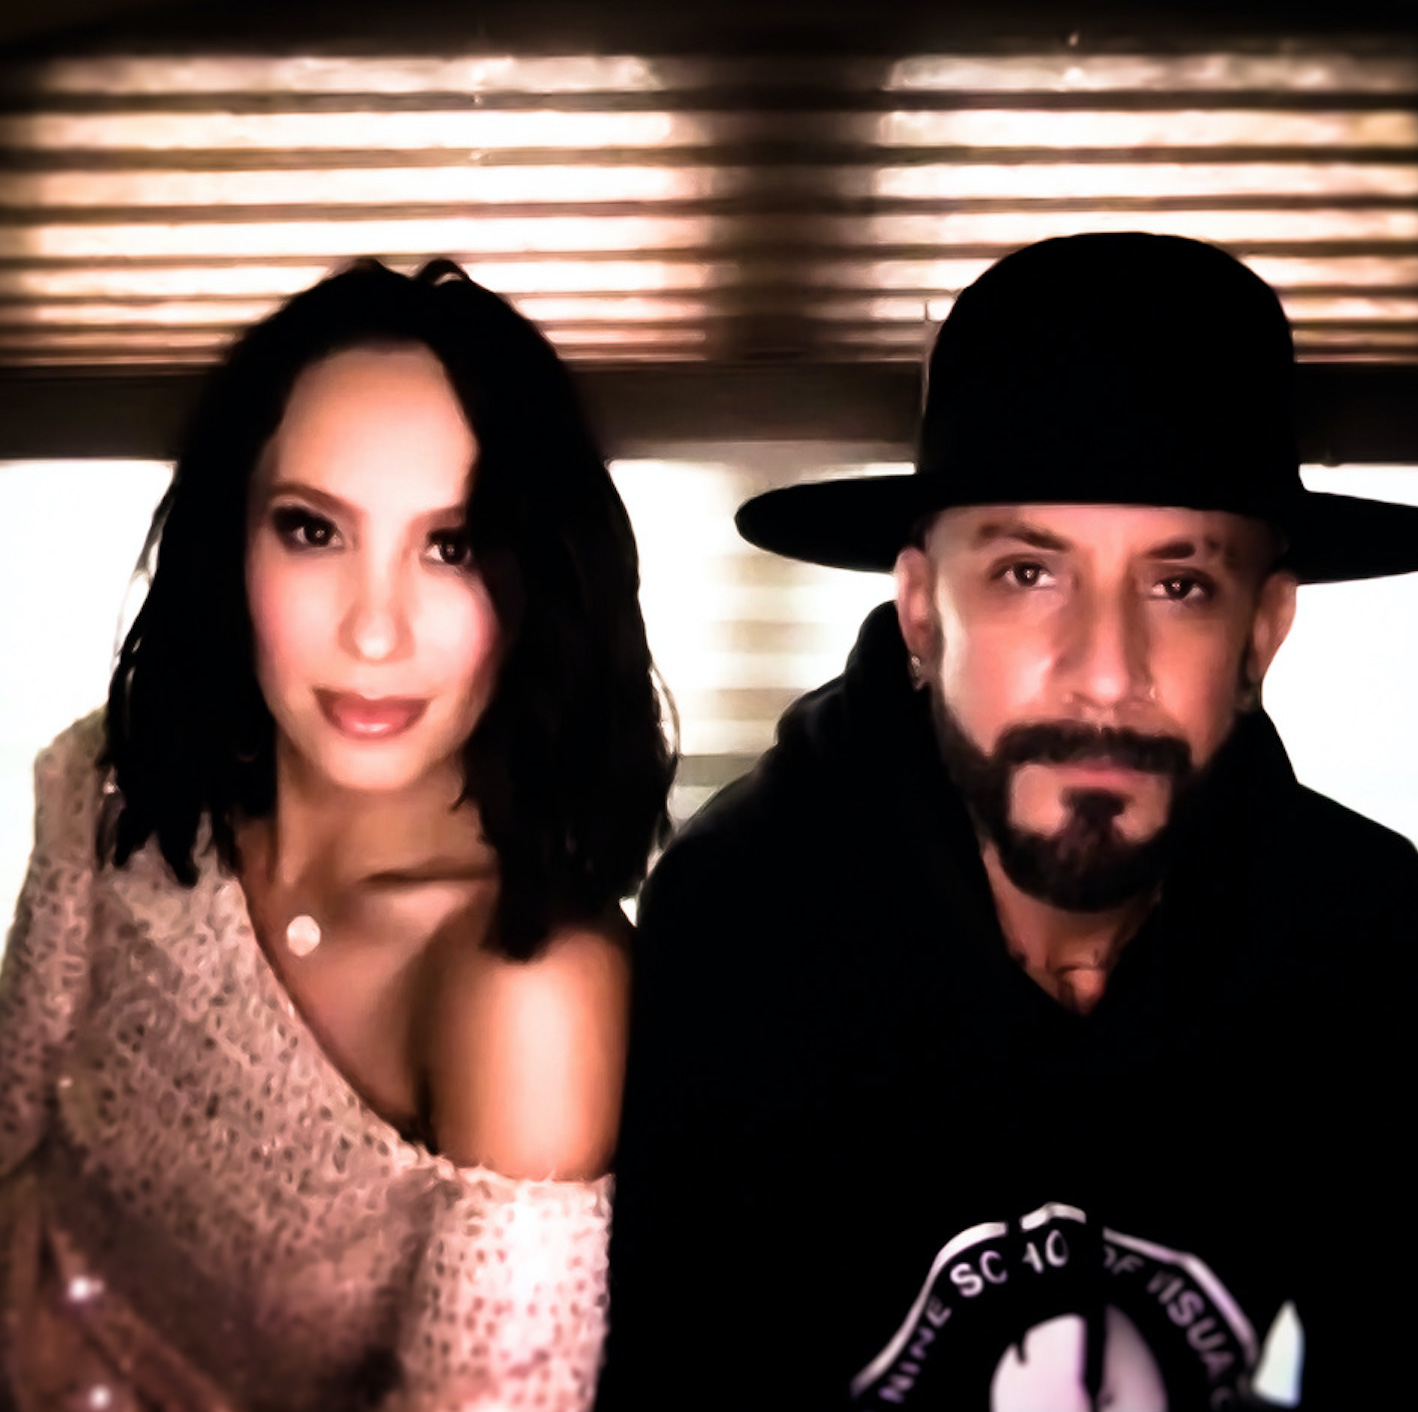 Backstreet Boys' AJ McLean and Dancing with the Stars Partner Cheryl Burke to Launch New Podcast